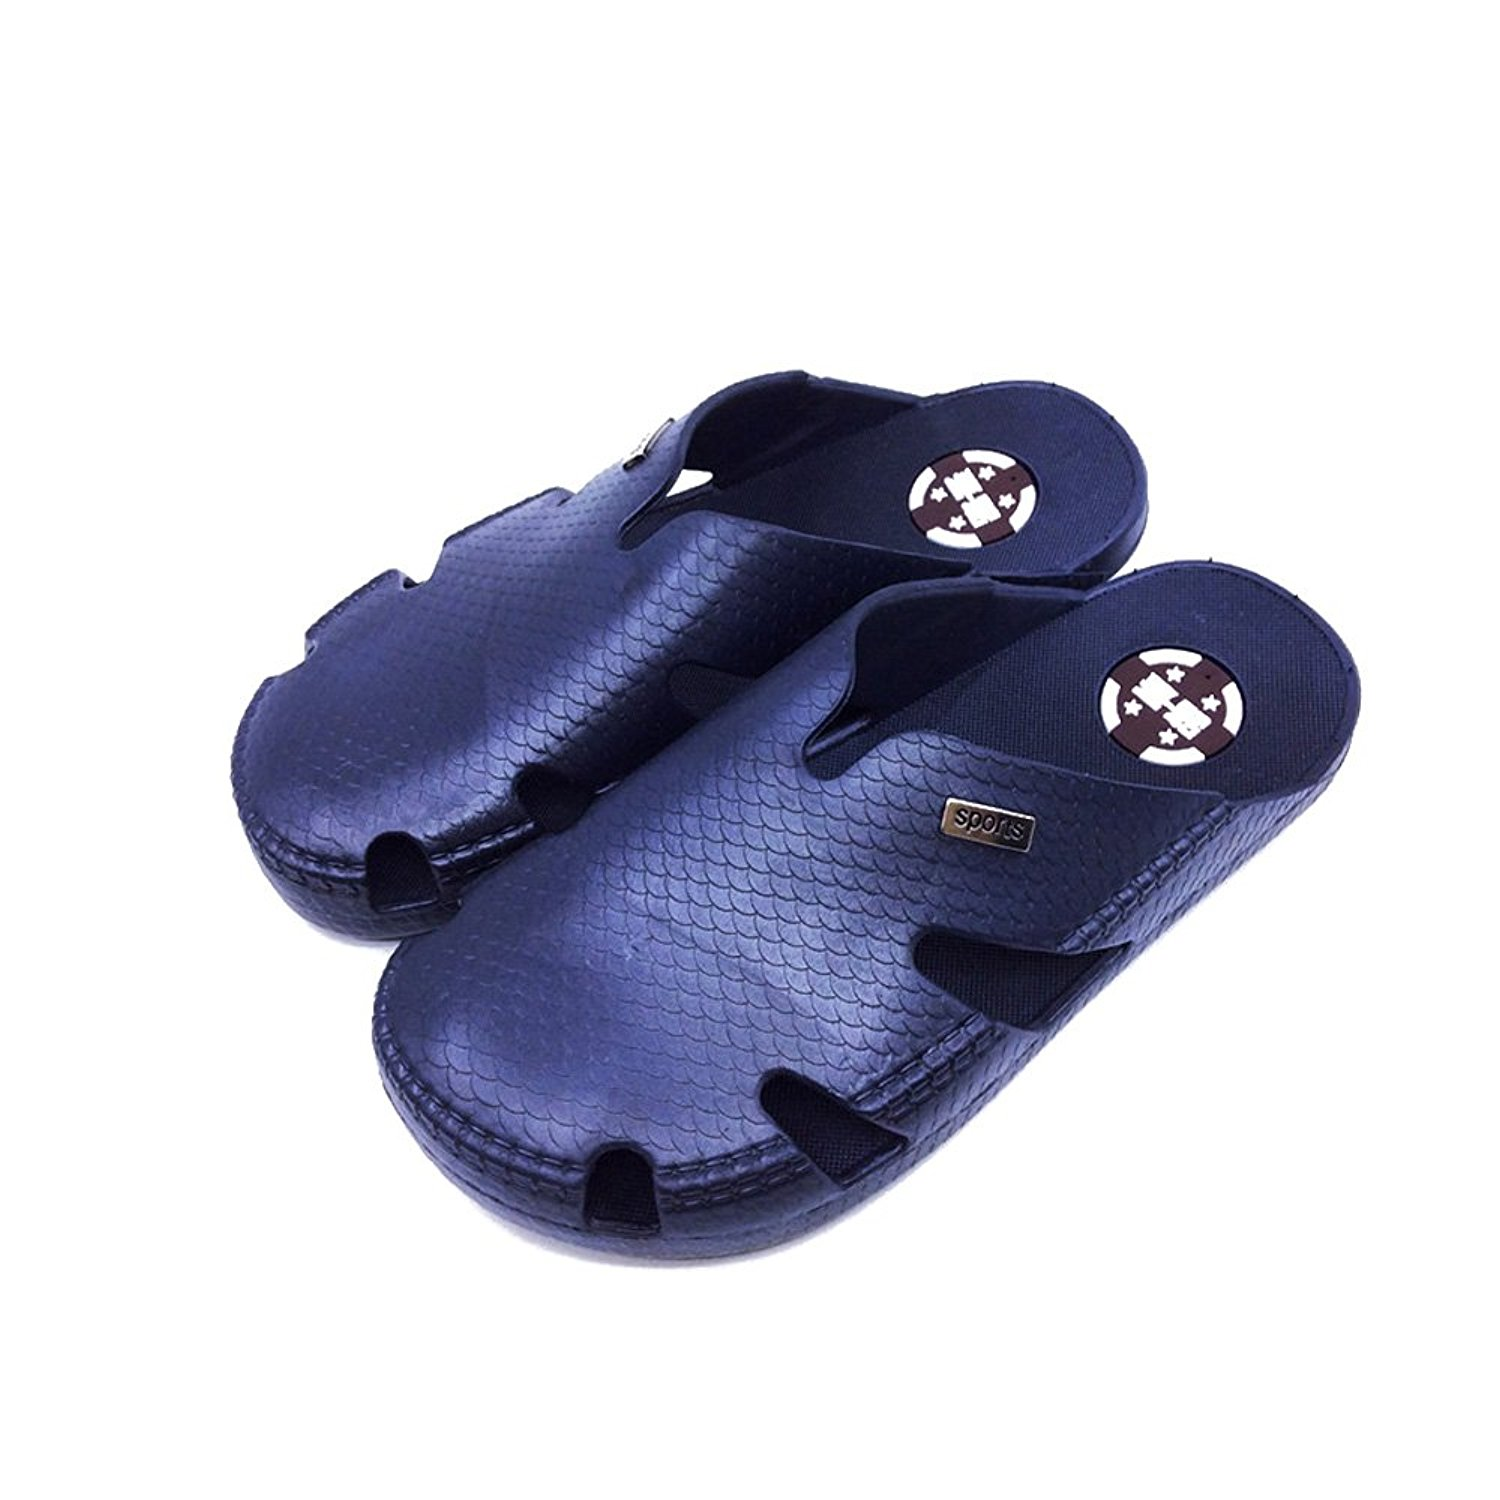 379e525f5 Get Quotations · IUU Mens Beach Sandals Bath Slippers Non-Slip Sandals  House Slippers